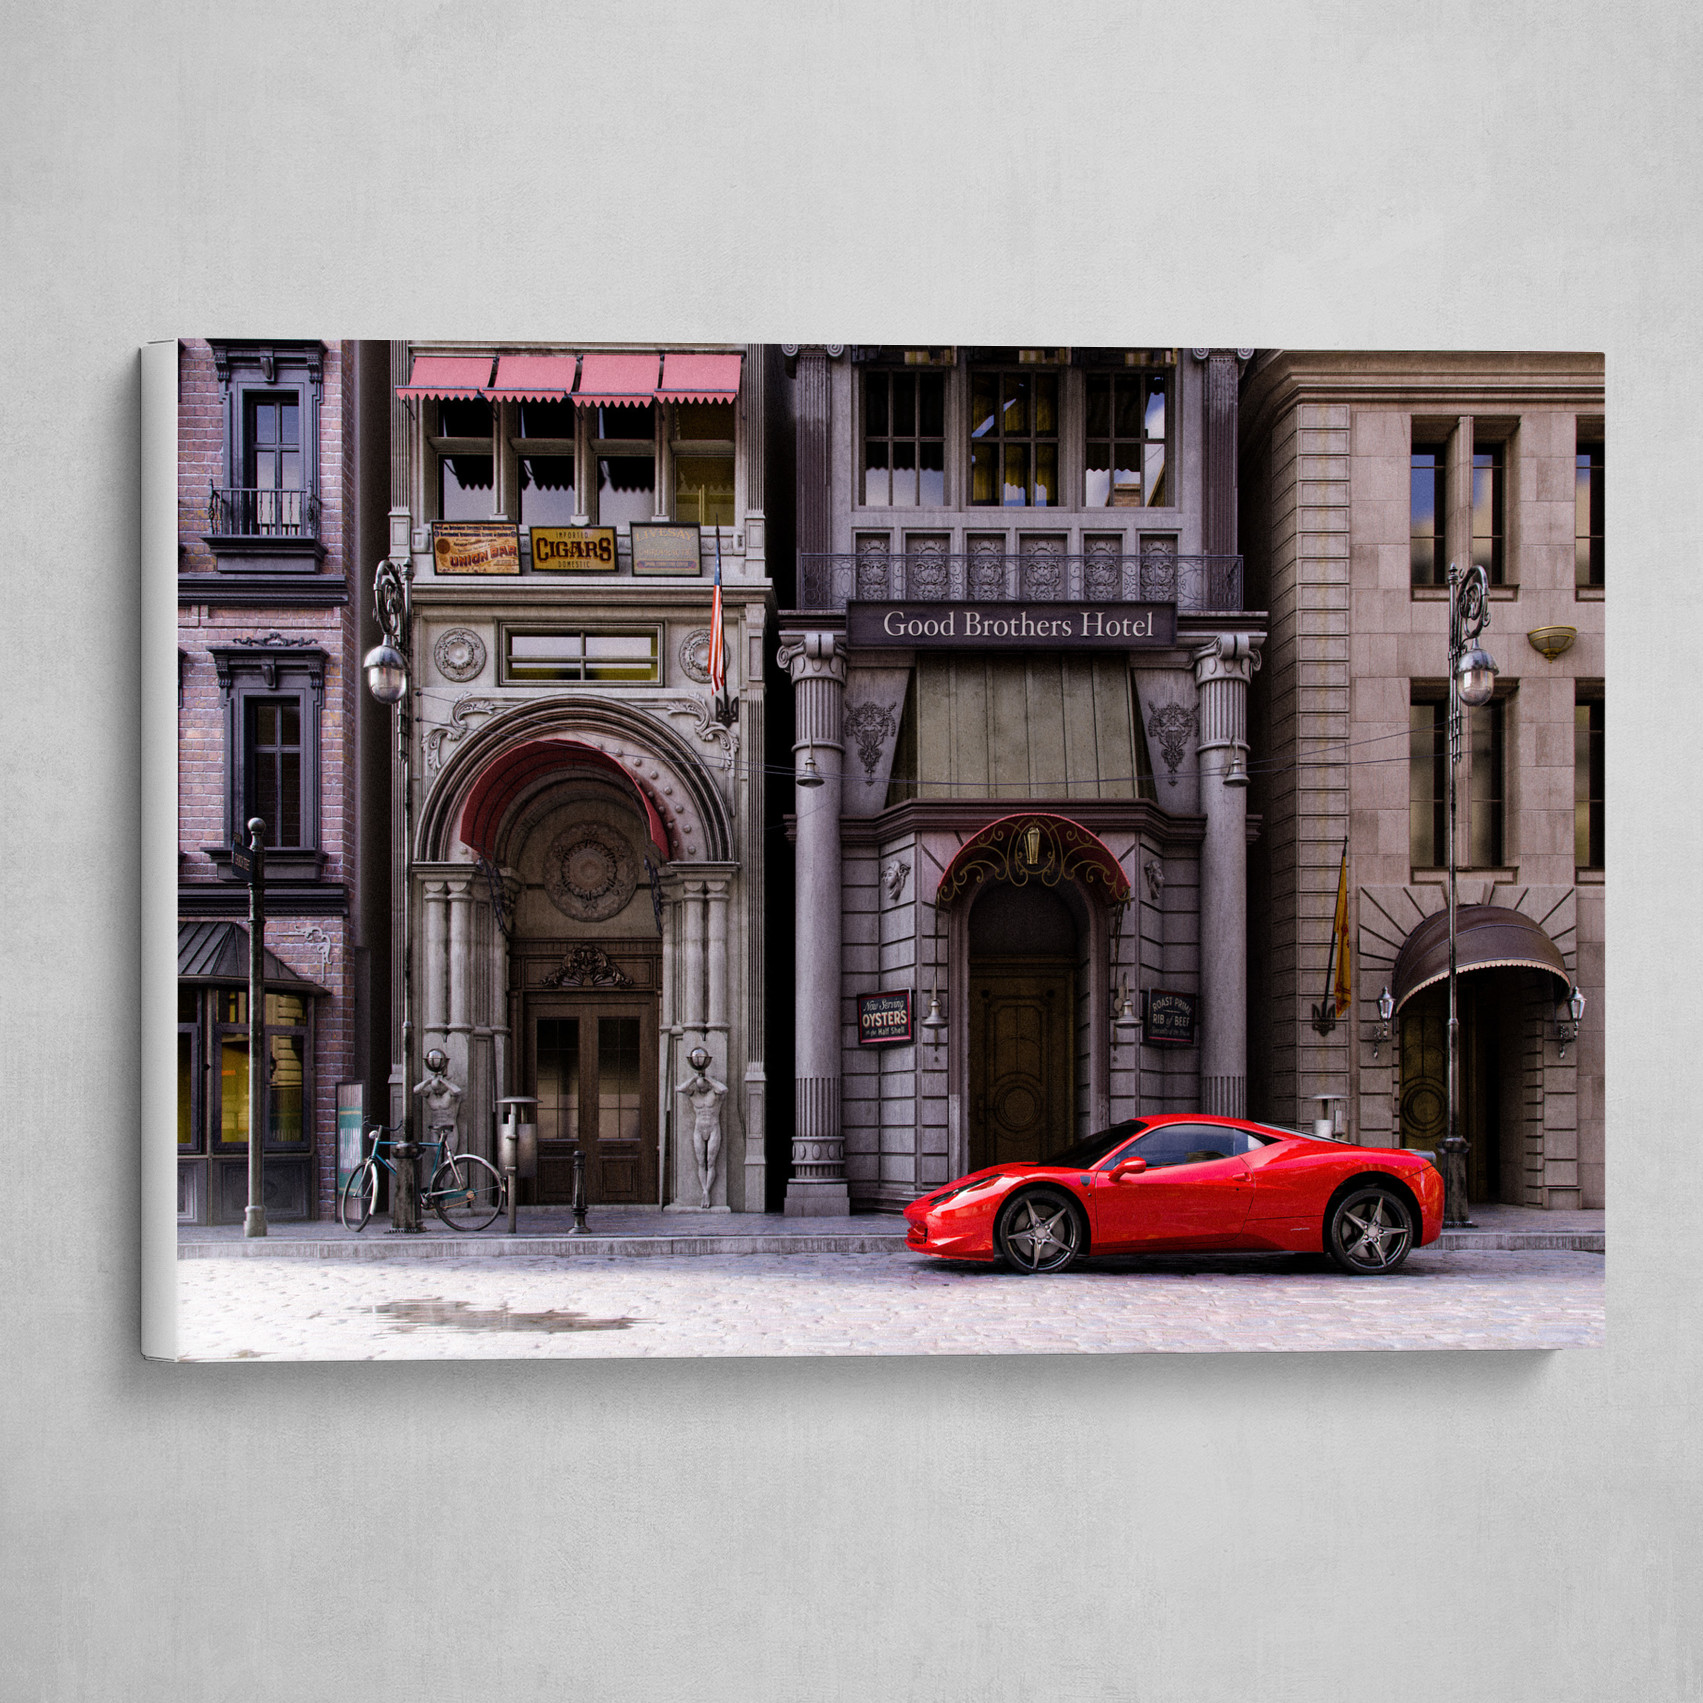 Red Car on a Side Street